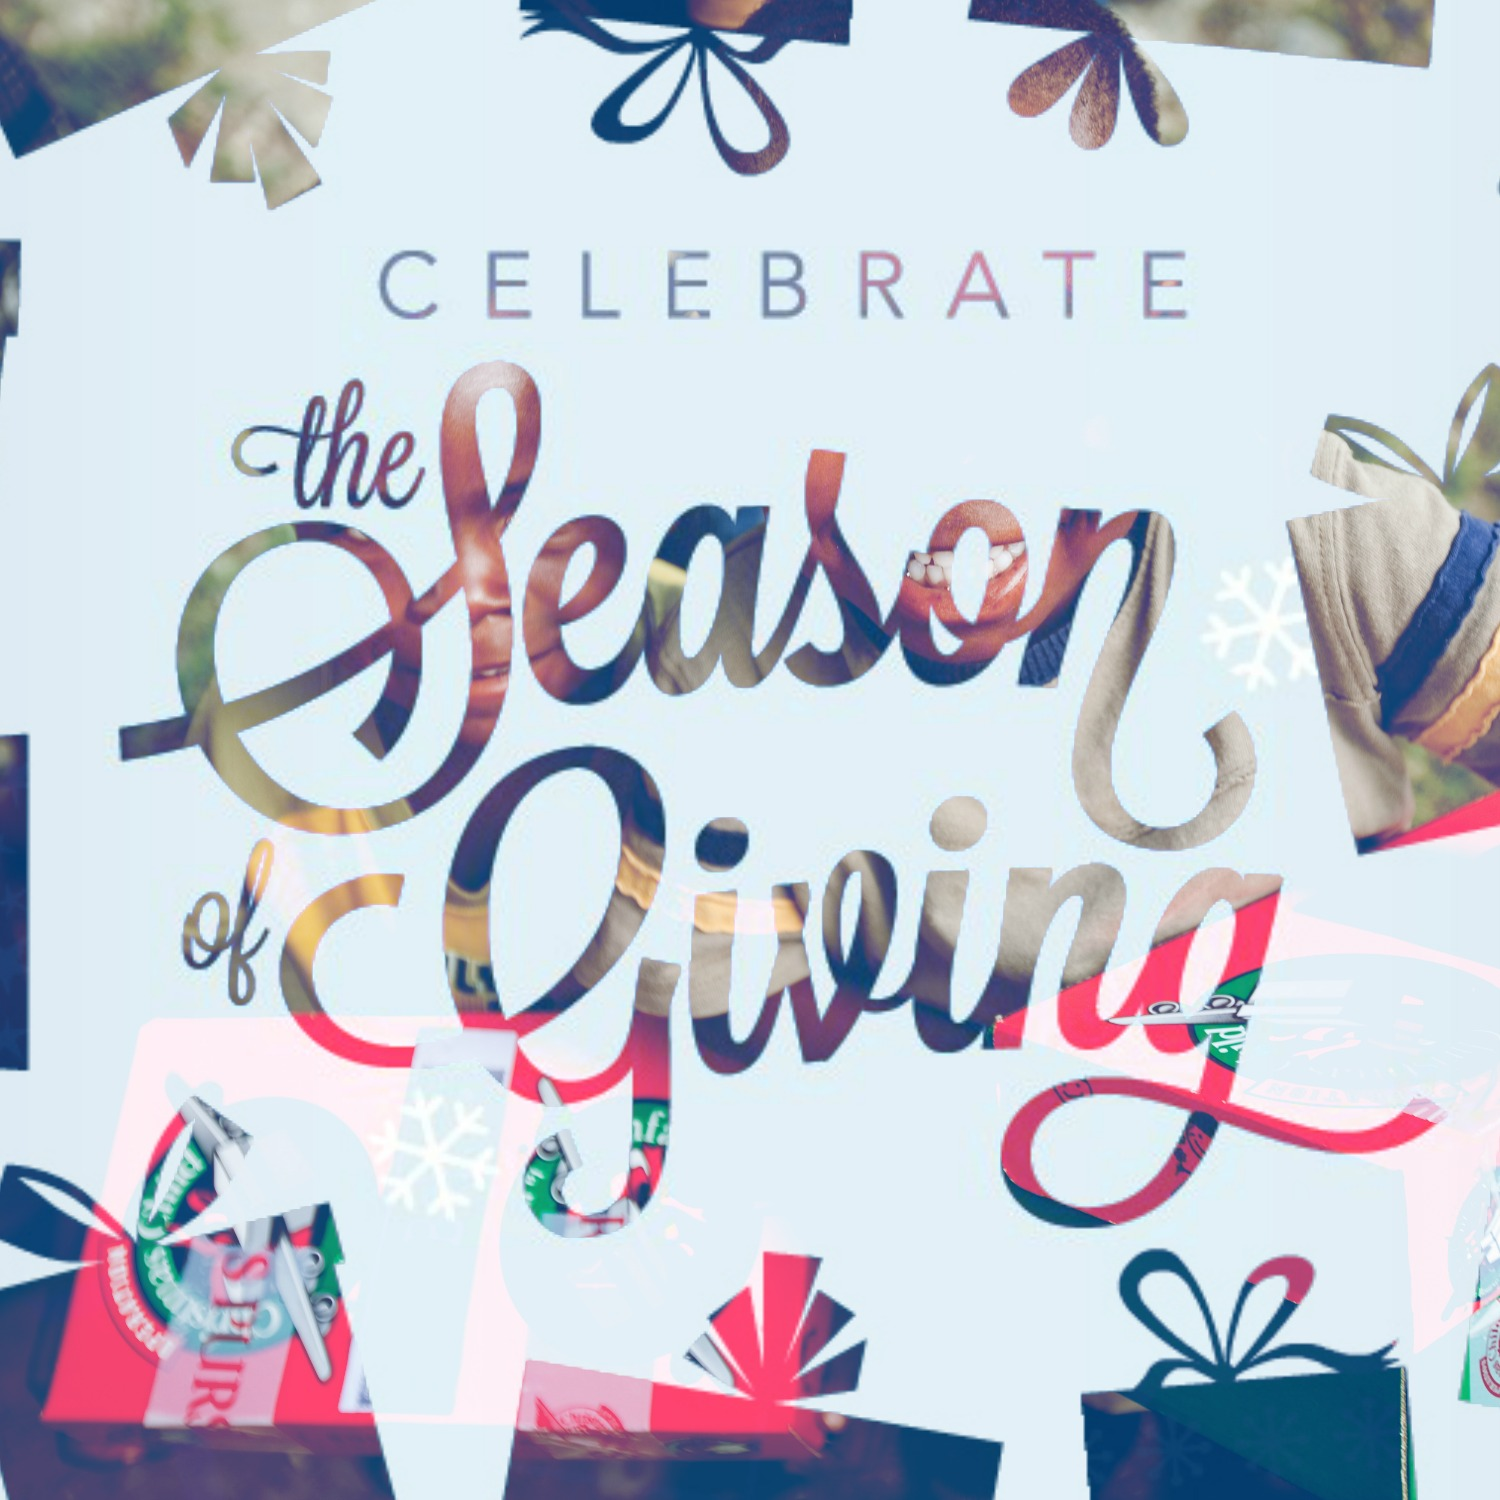 Celebrate the Season of Giving - The Best Ways to Give Back this Christmas in Australia and Around the World